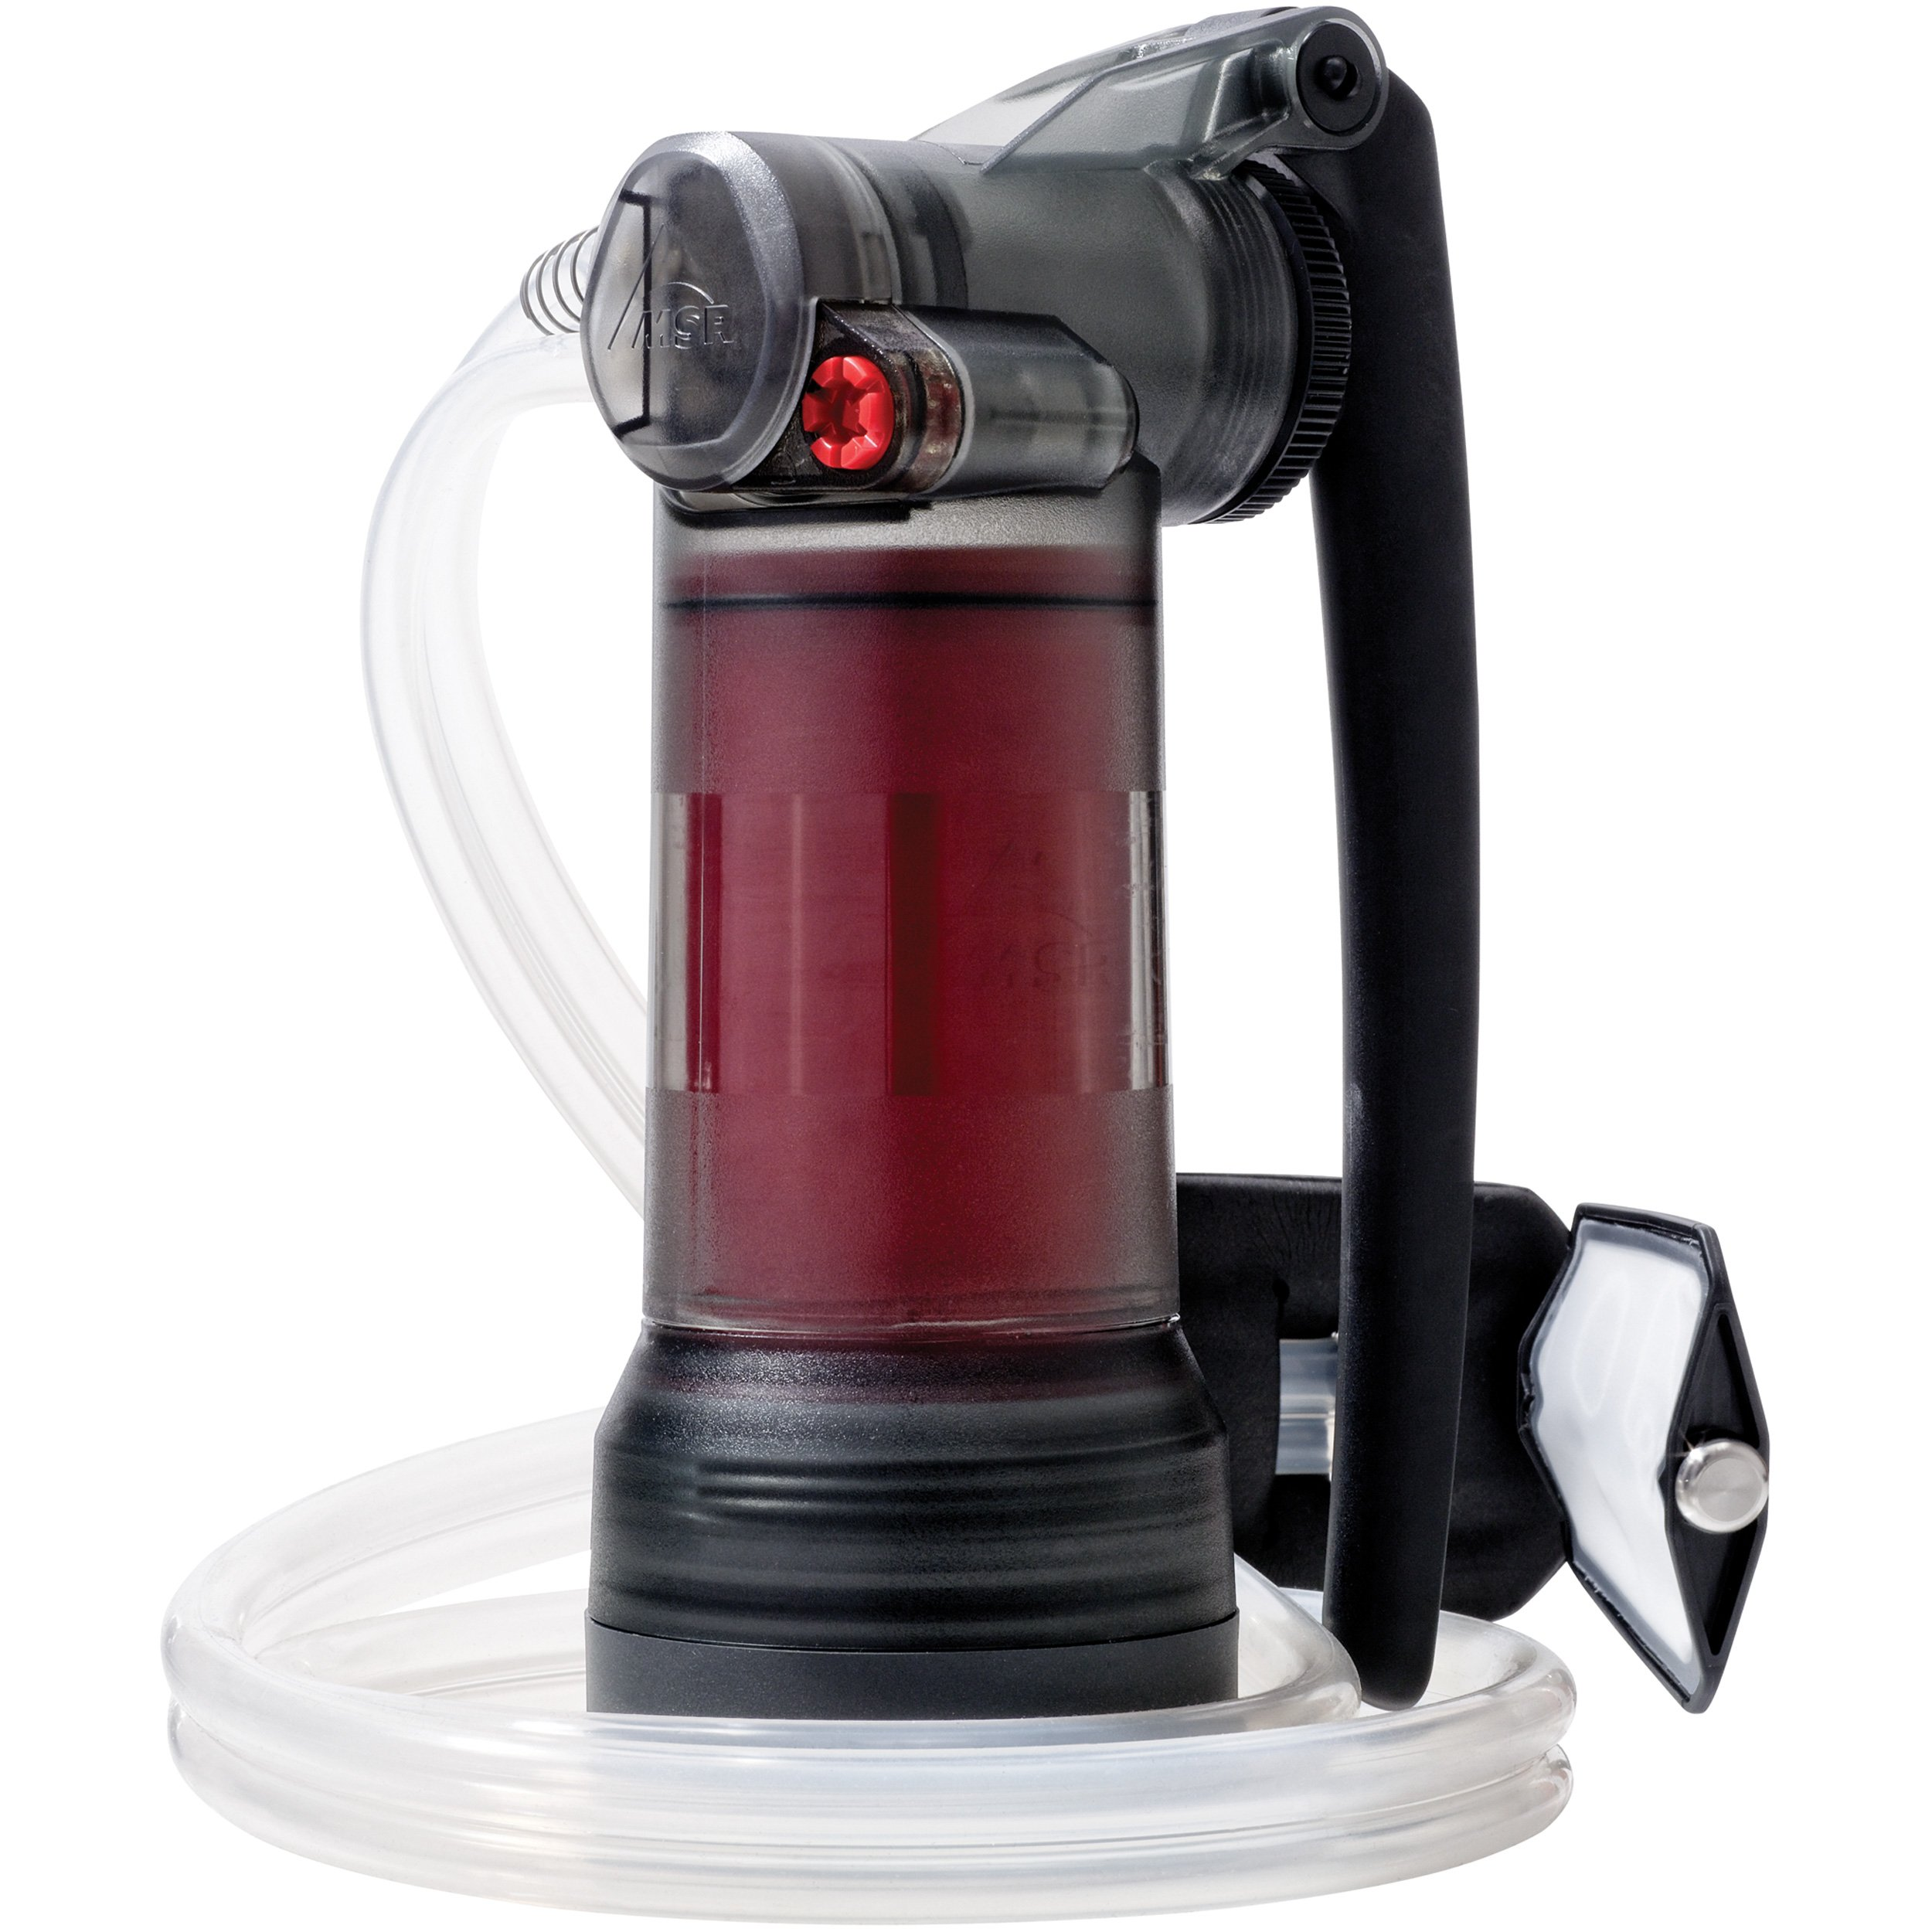 MSR Guardian Military-Grade Water Purifier Pump for Backcountry, Global Travel, and Emergency Preparedness